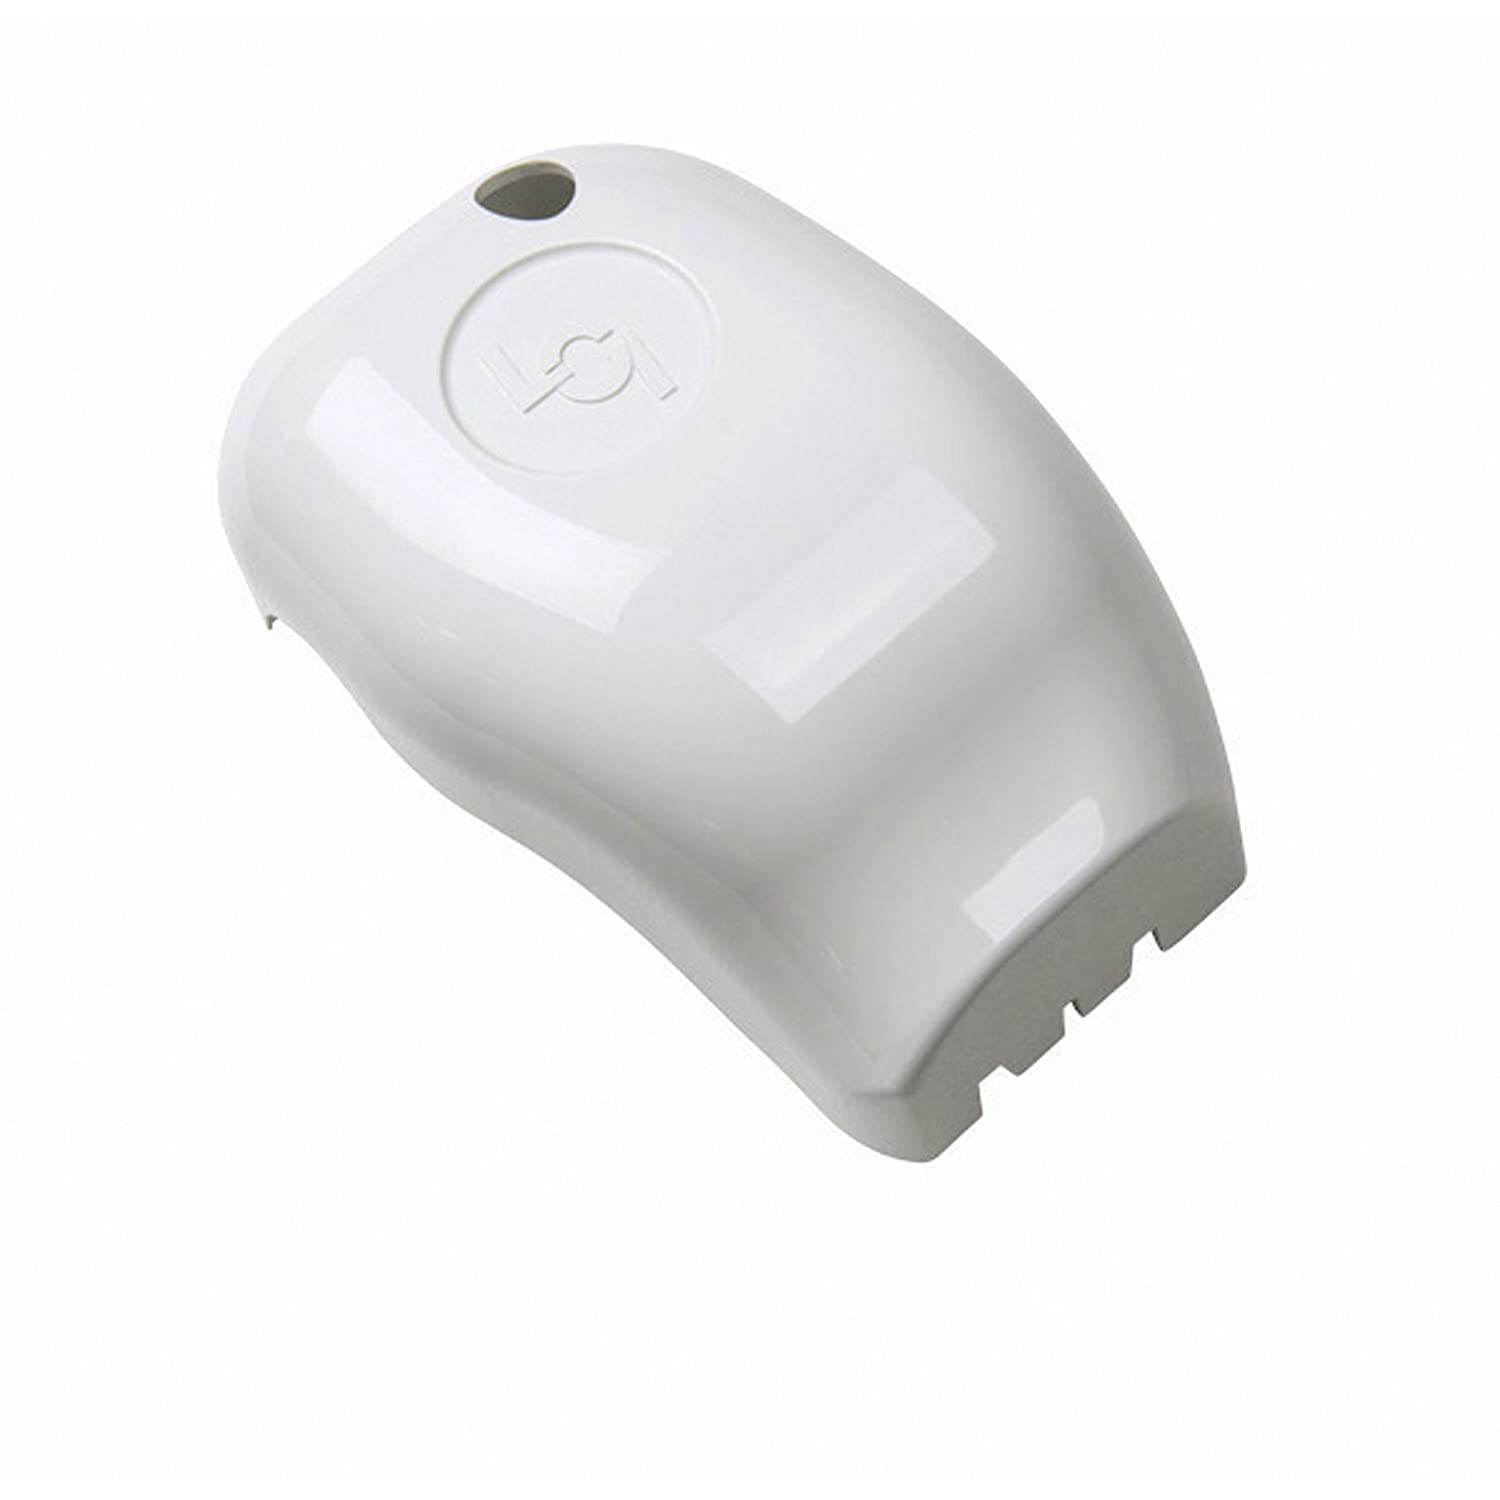 Lippert Components 289557 Solera White Awning Drive Head Front Cover